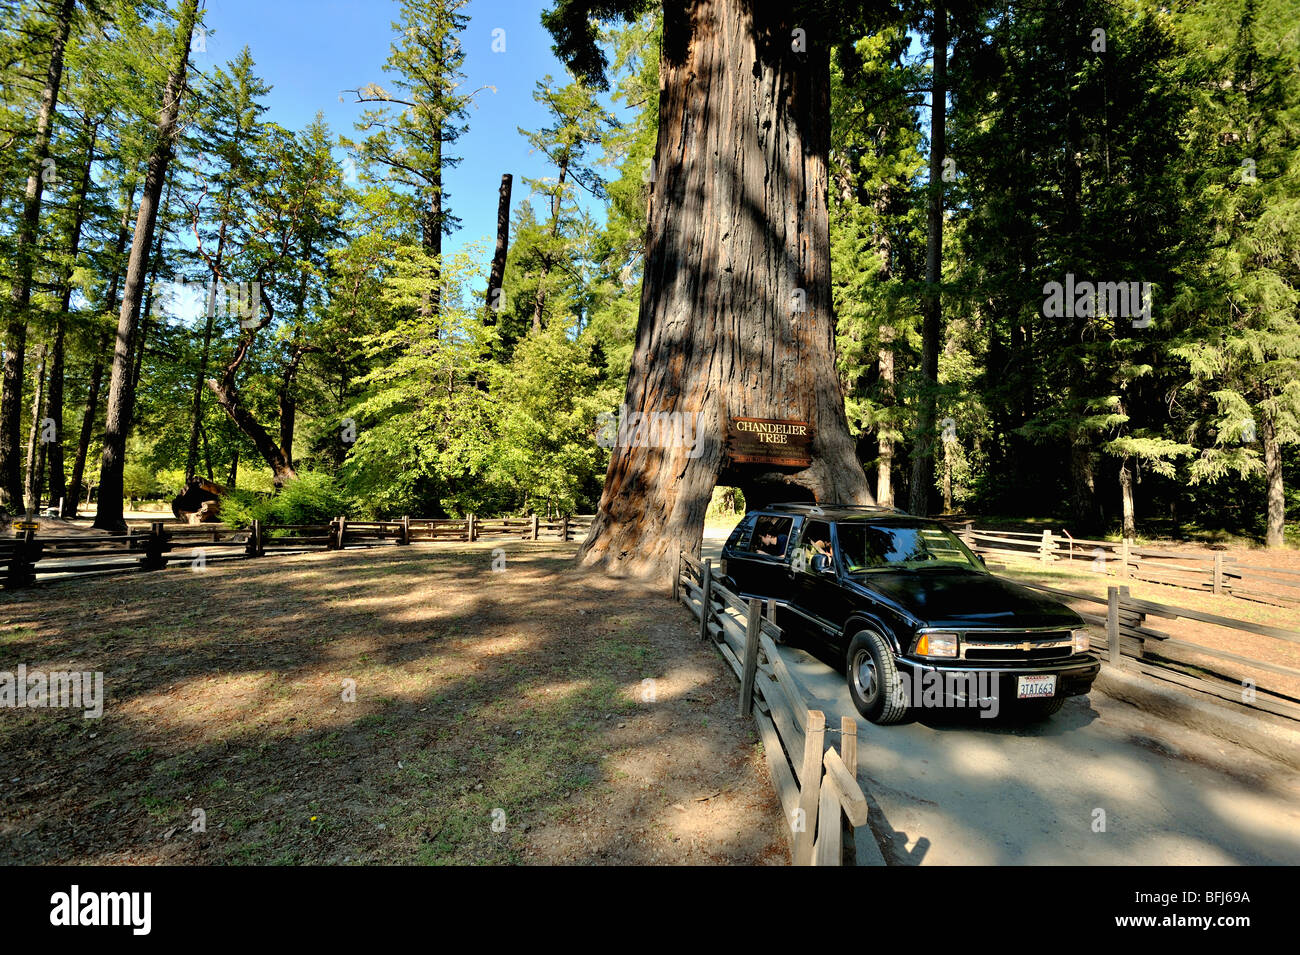 Chandelier tree in the coastal Redwood forests of north California ...